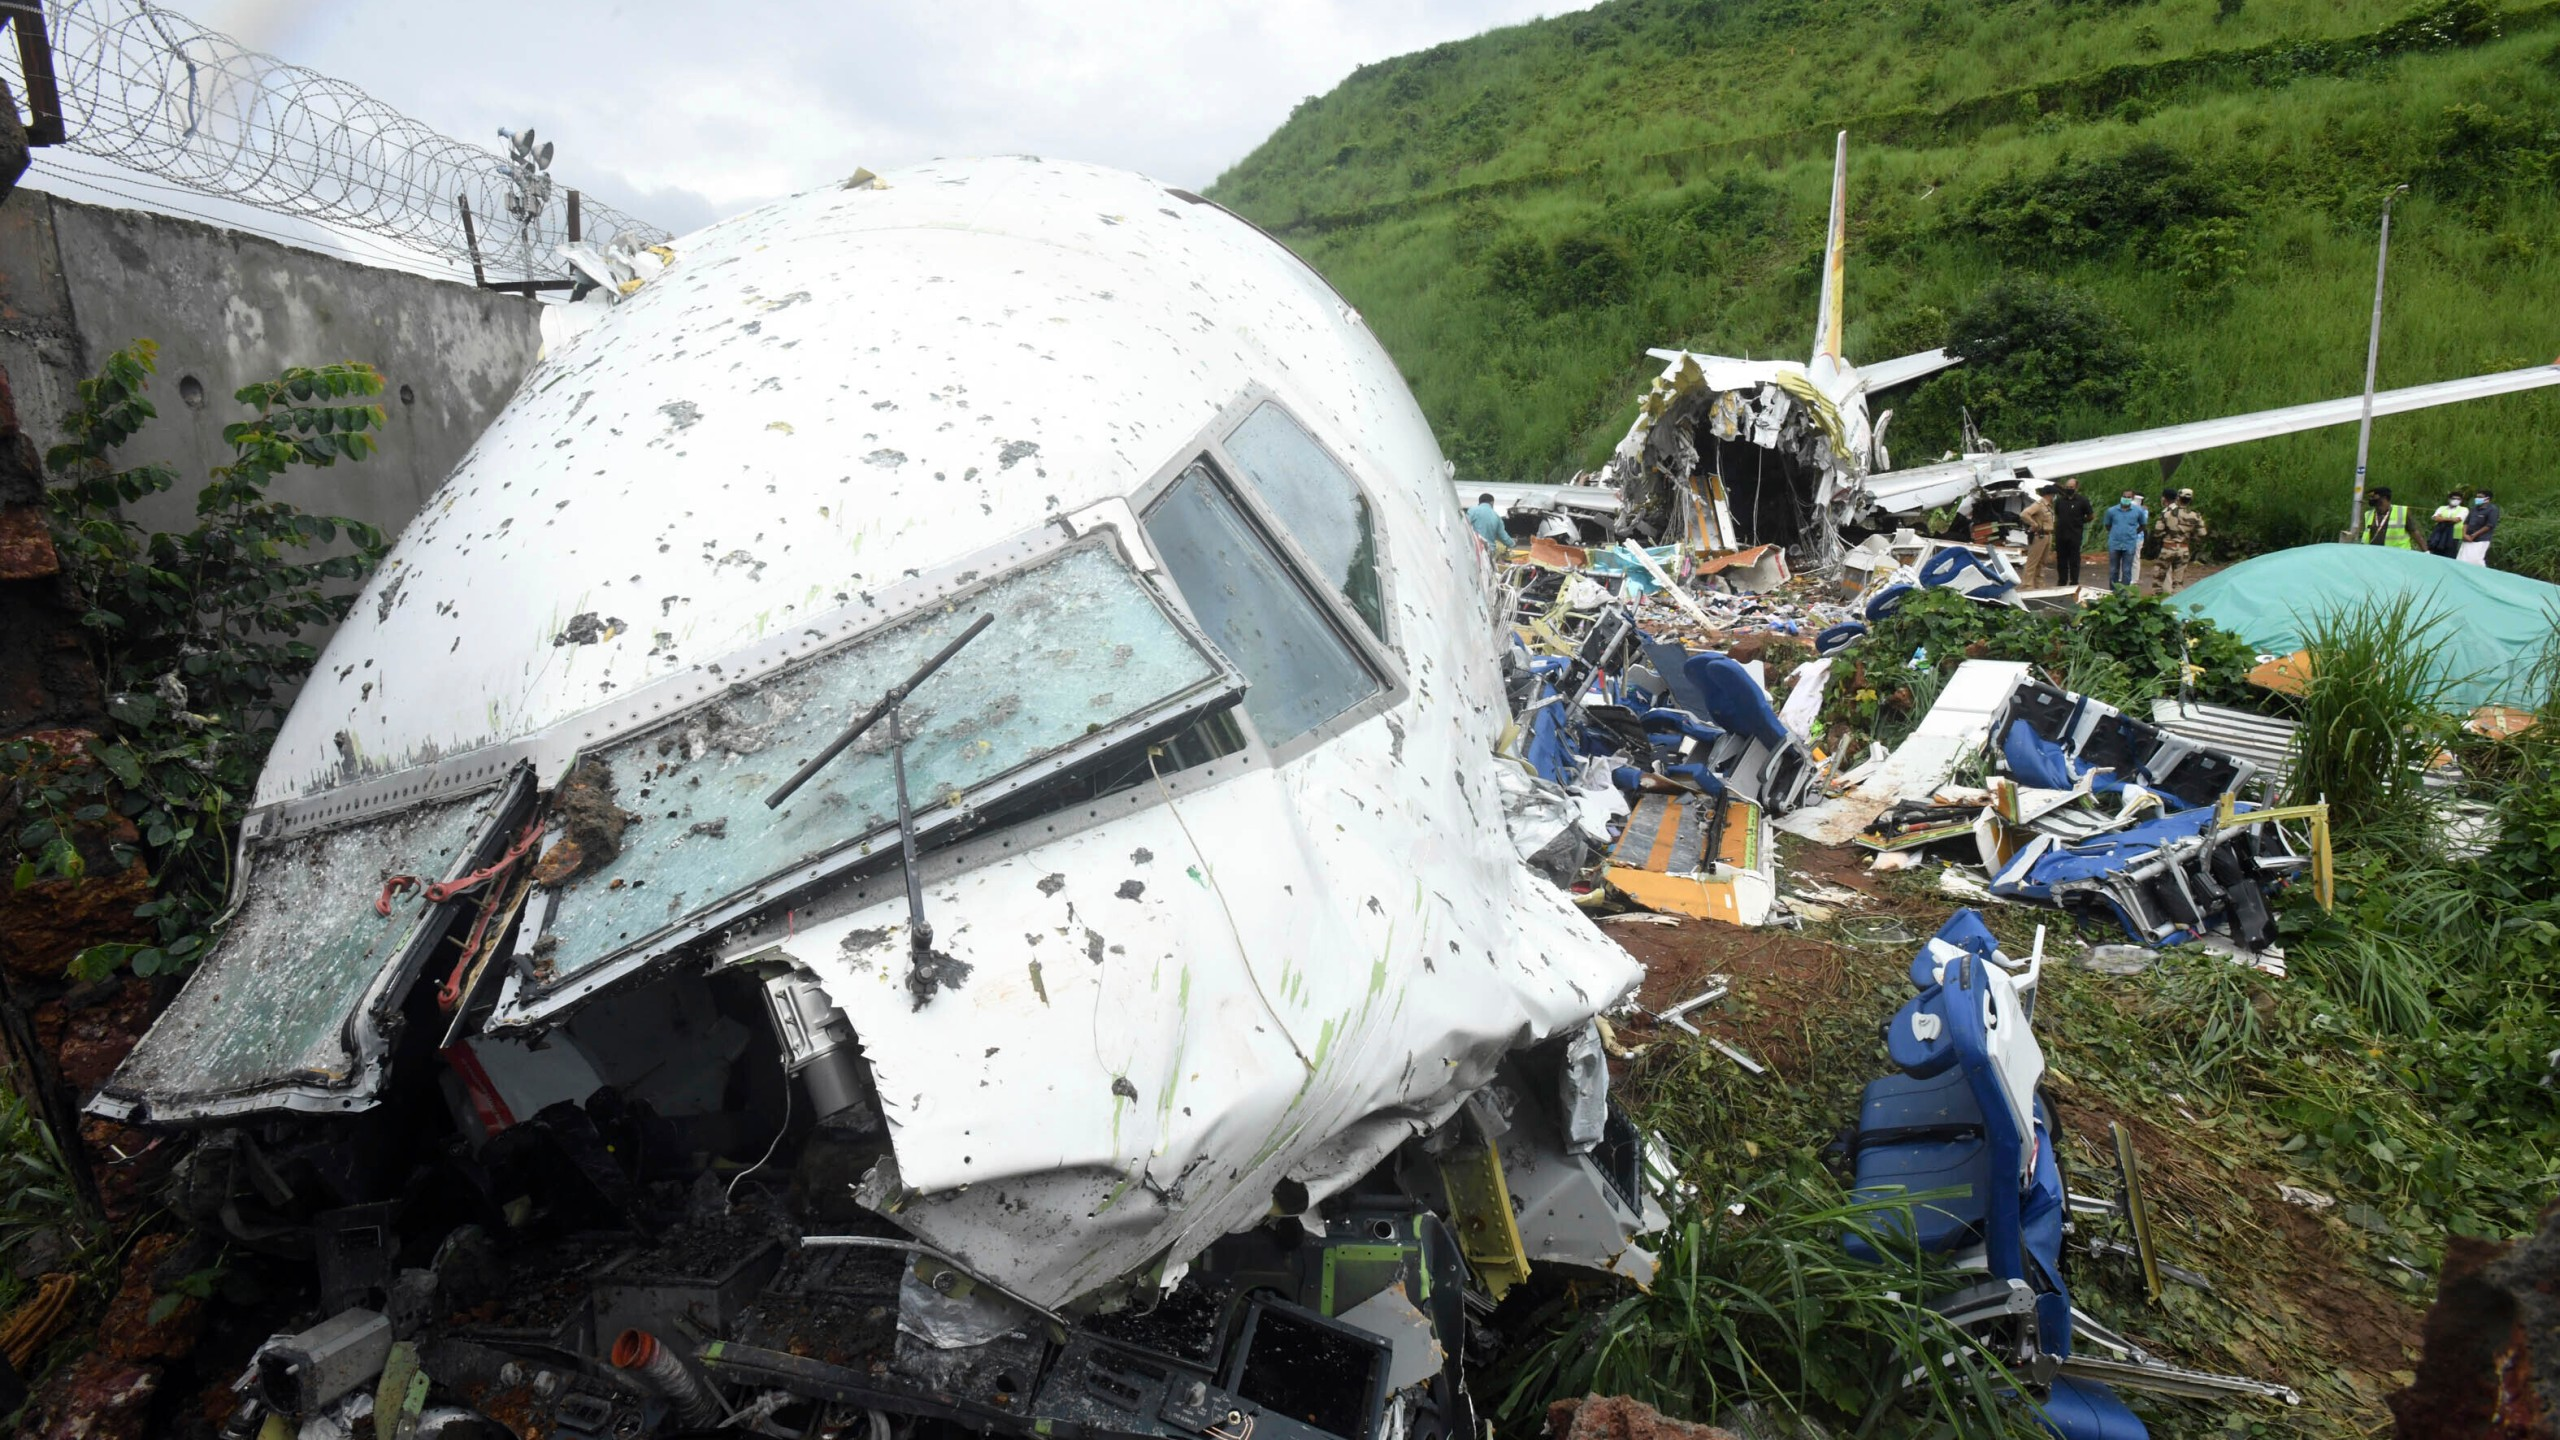 People stand by the debris of the Air India Express flight that skidded off a runway while landing in Kozhikode, Kerala state, India on Aug. 8, 2020. (AP Photo/Shijith Sreedhar)